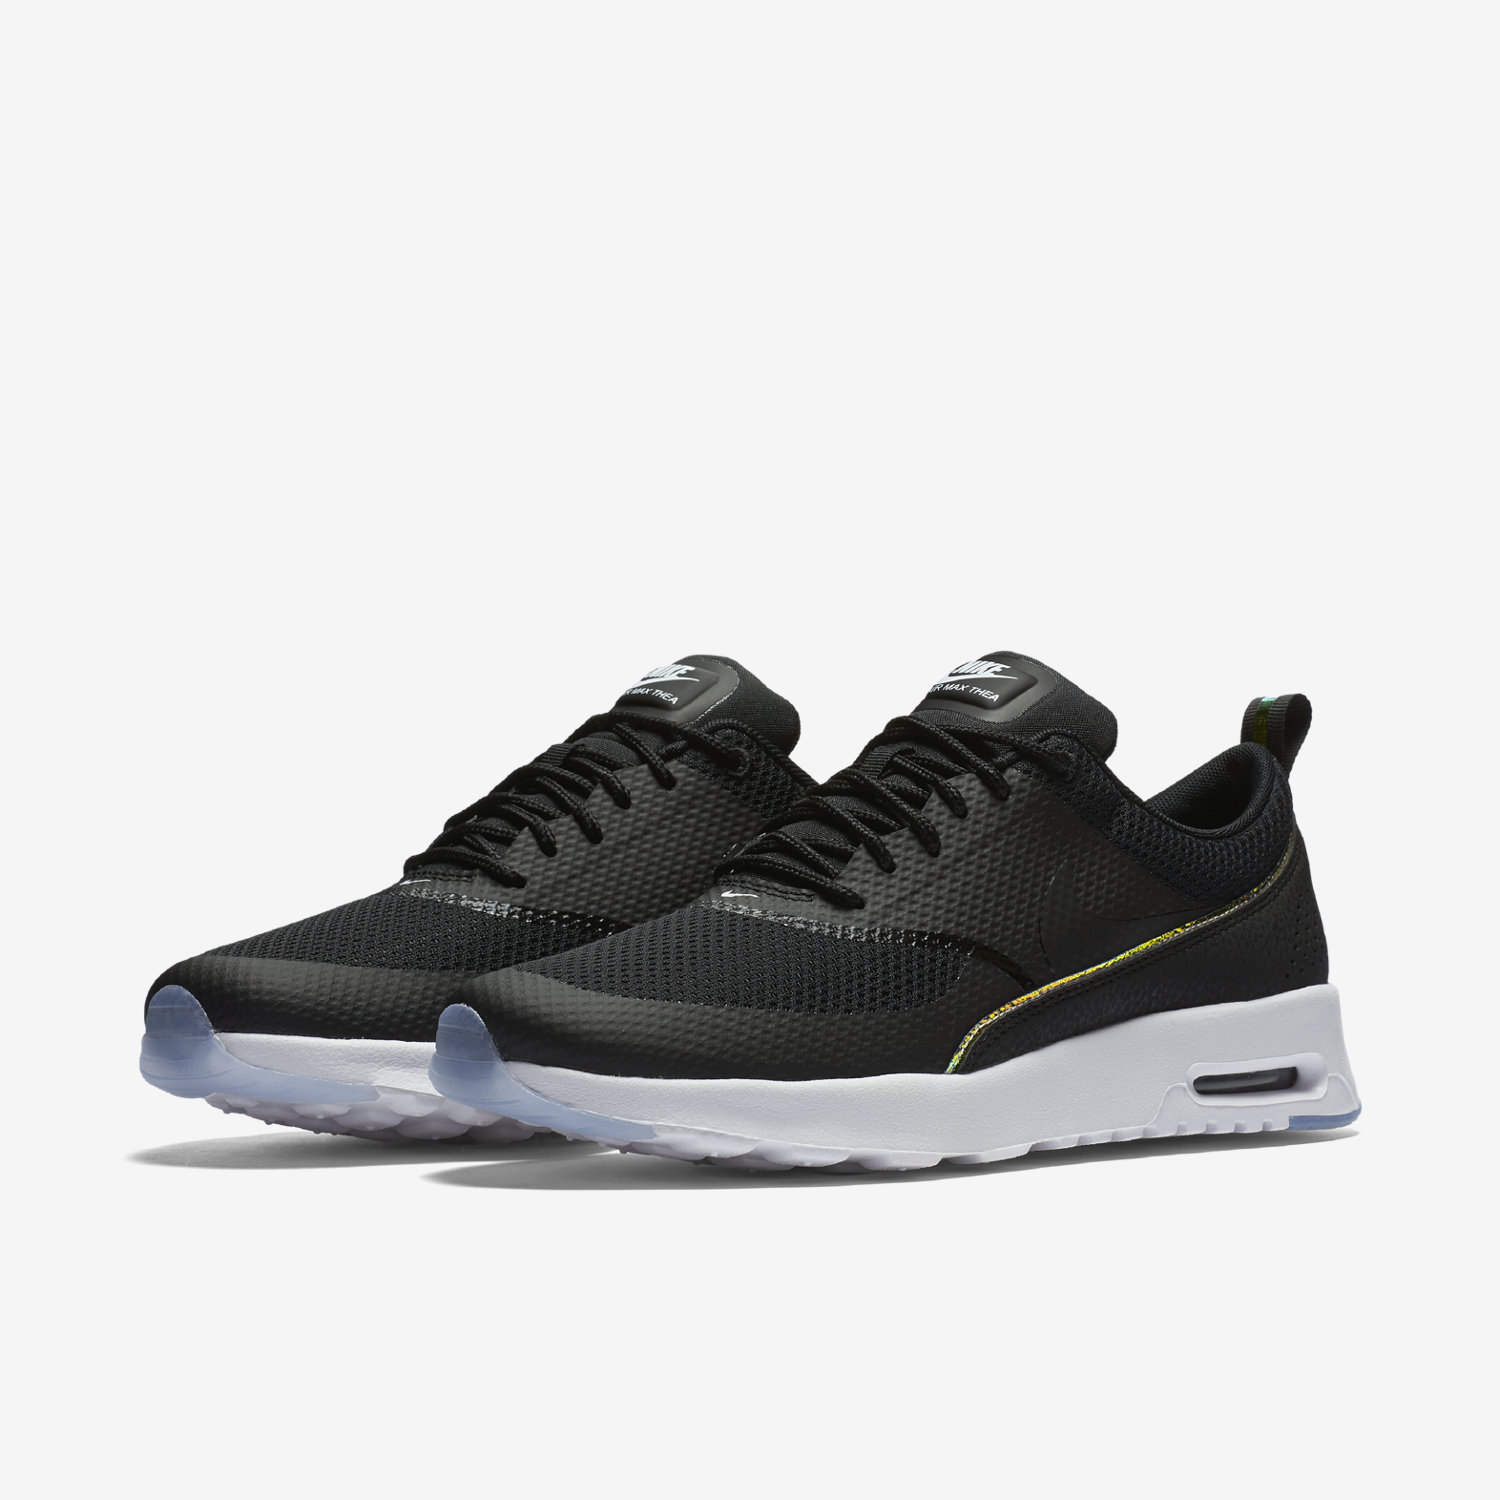 nike air max premium australia nike air max premium nike. Black Bedroom Furniture Sets. Home Design Ideas